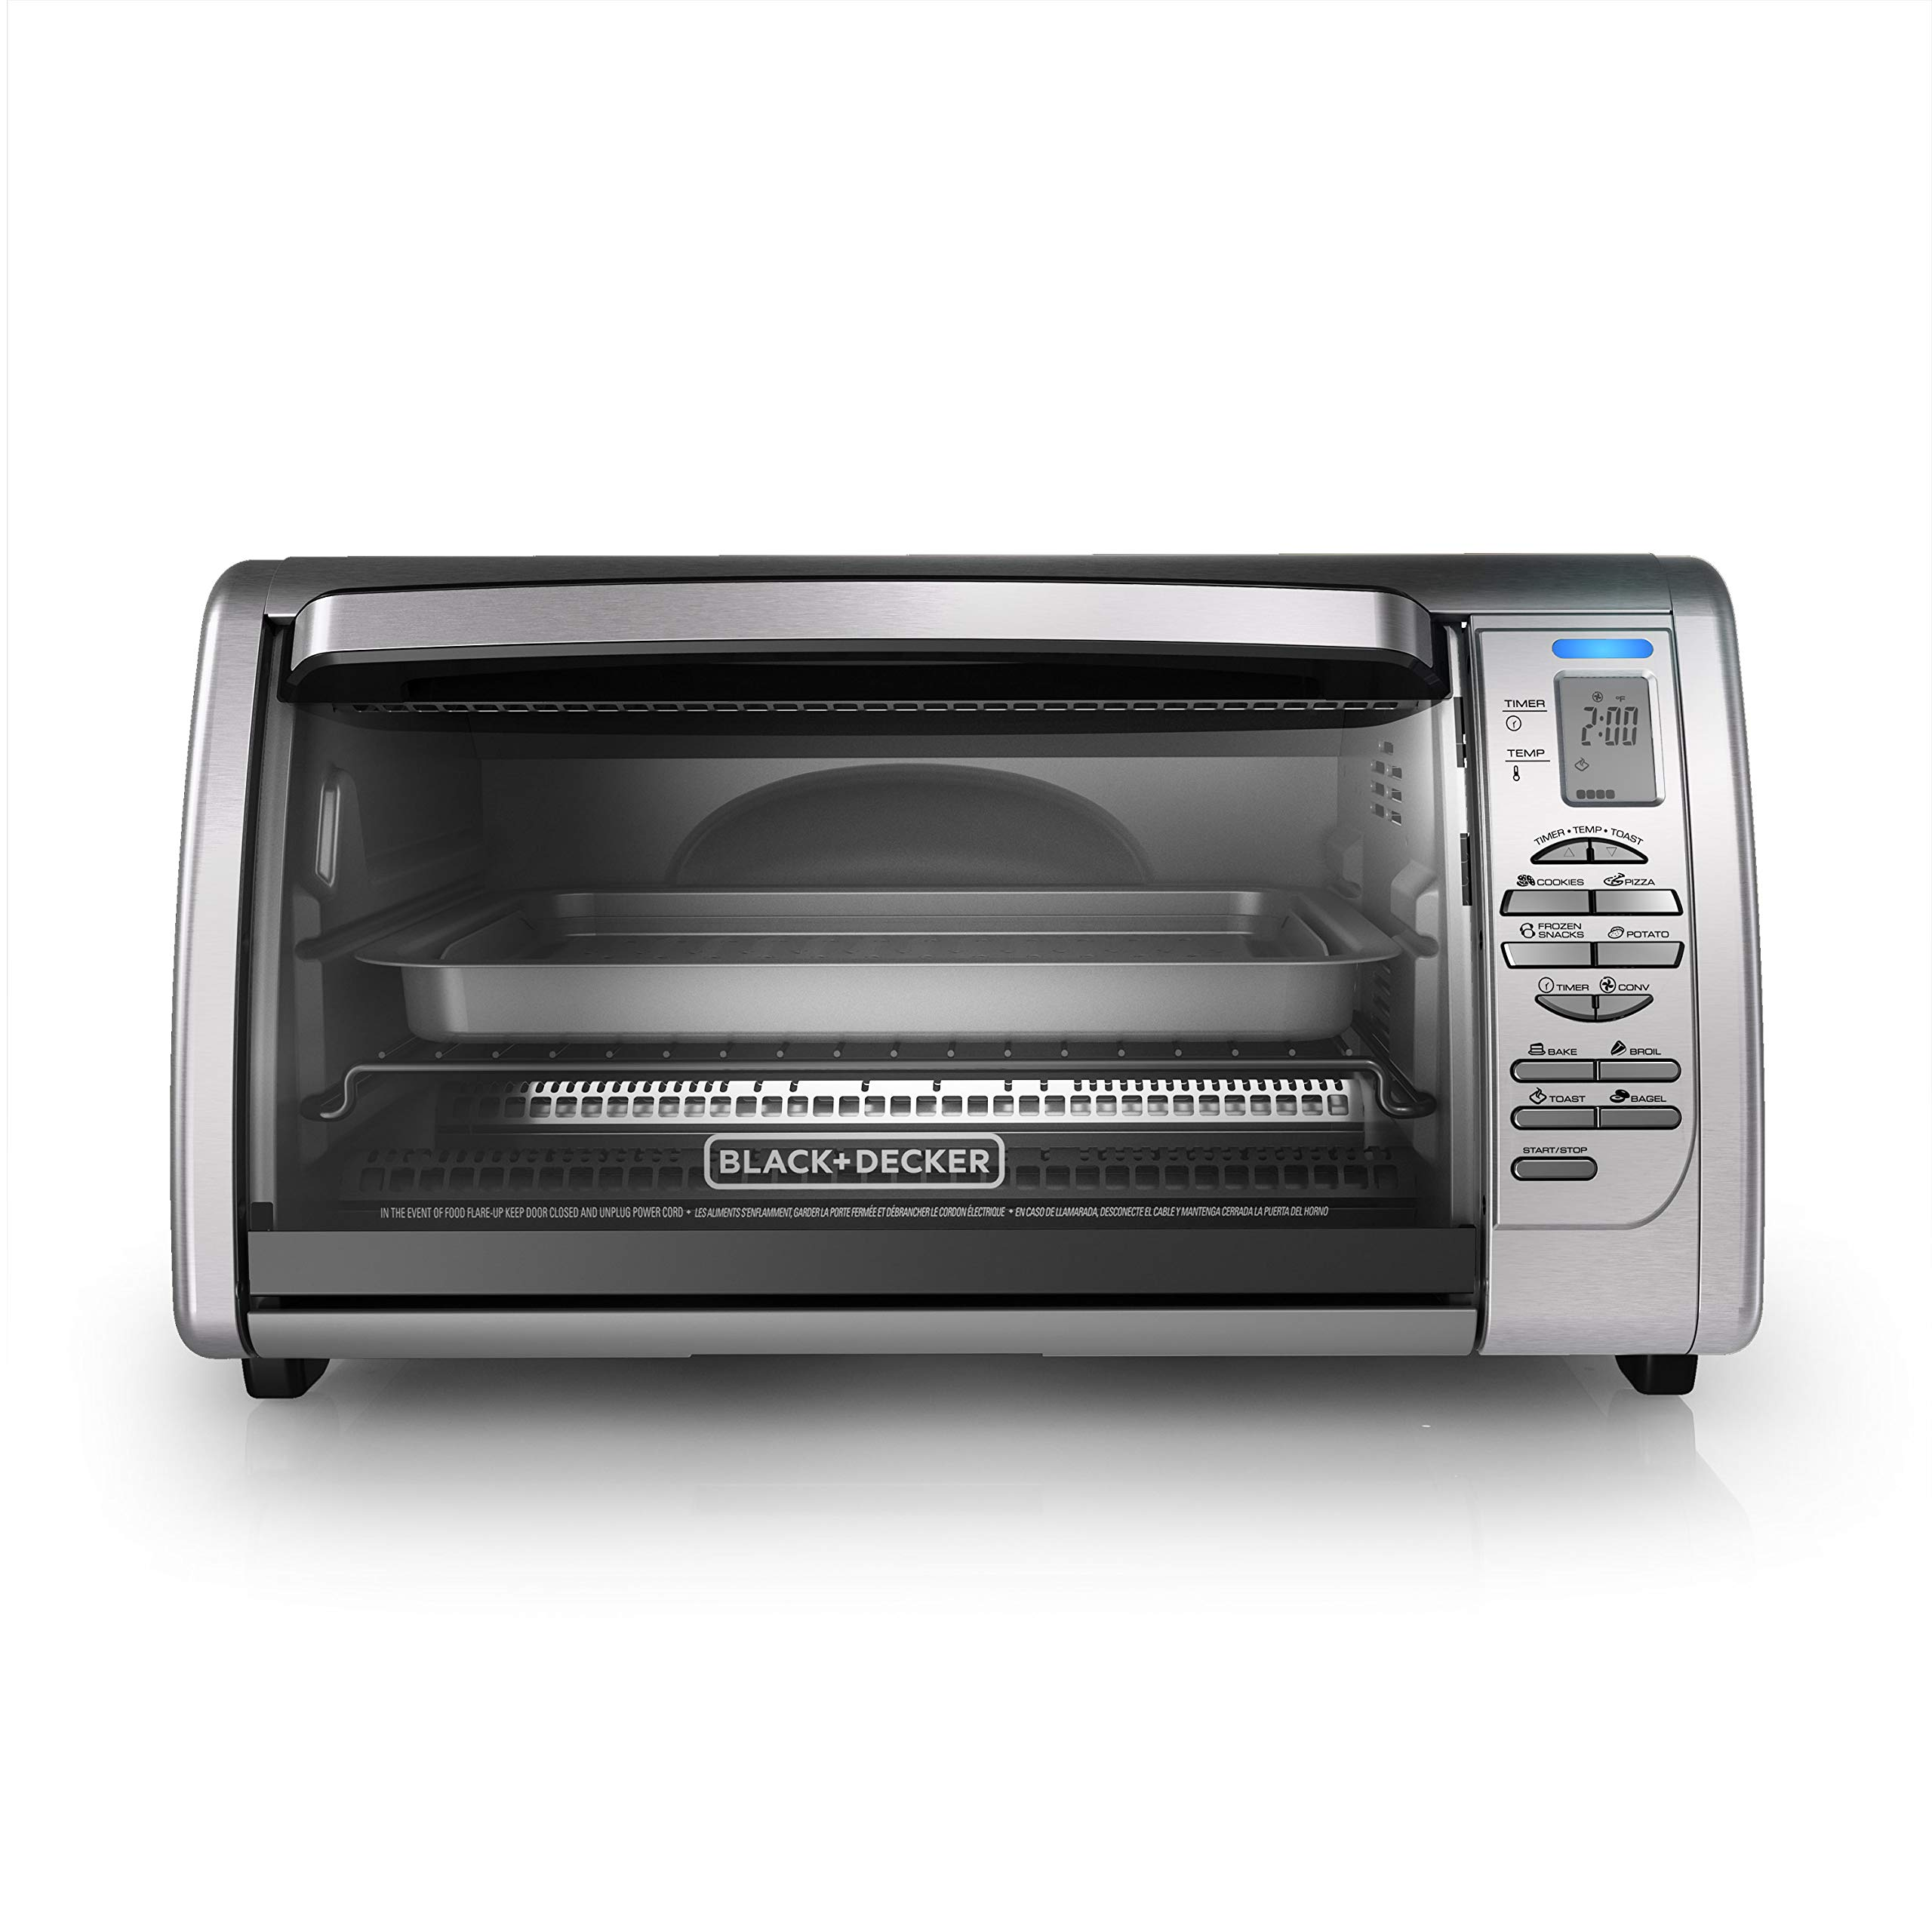 black and decker convection microwave oven manual